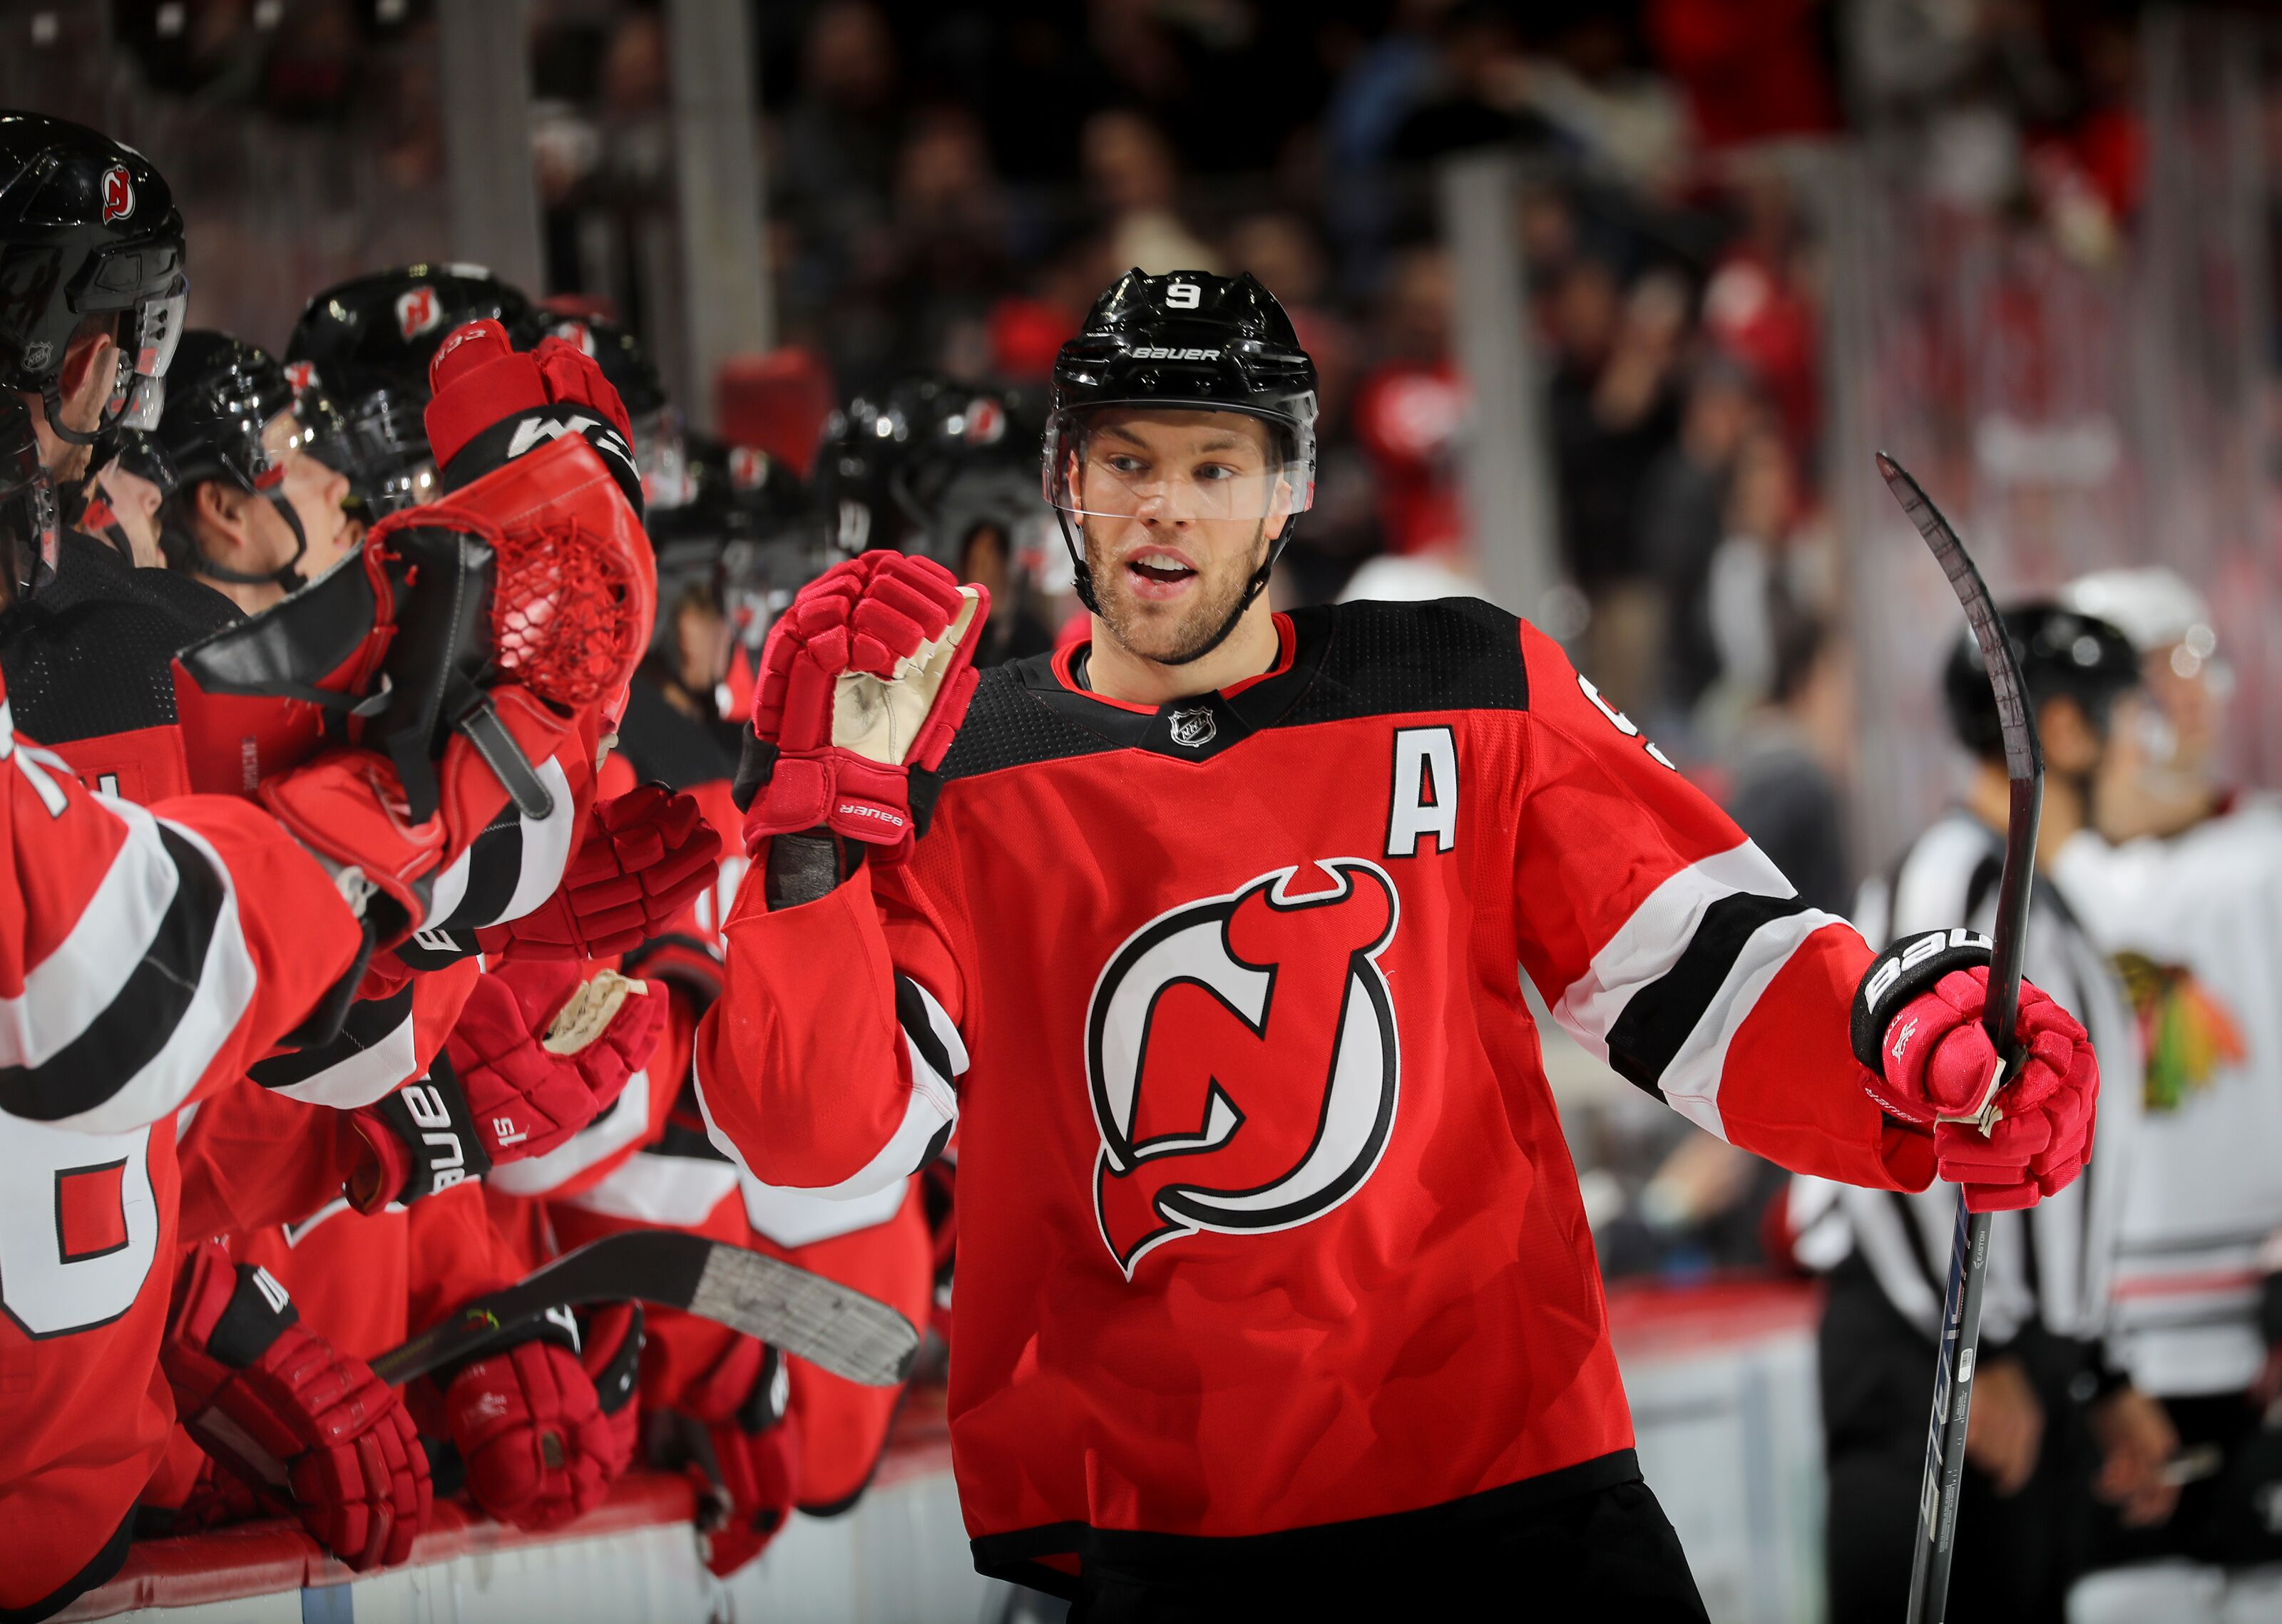 Taylor Hall trade rumors: Where will the New Jersey Devils' forward land?